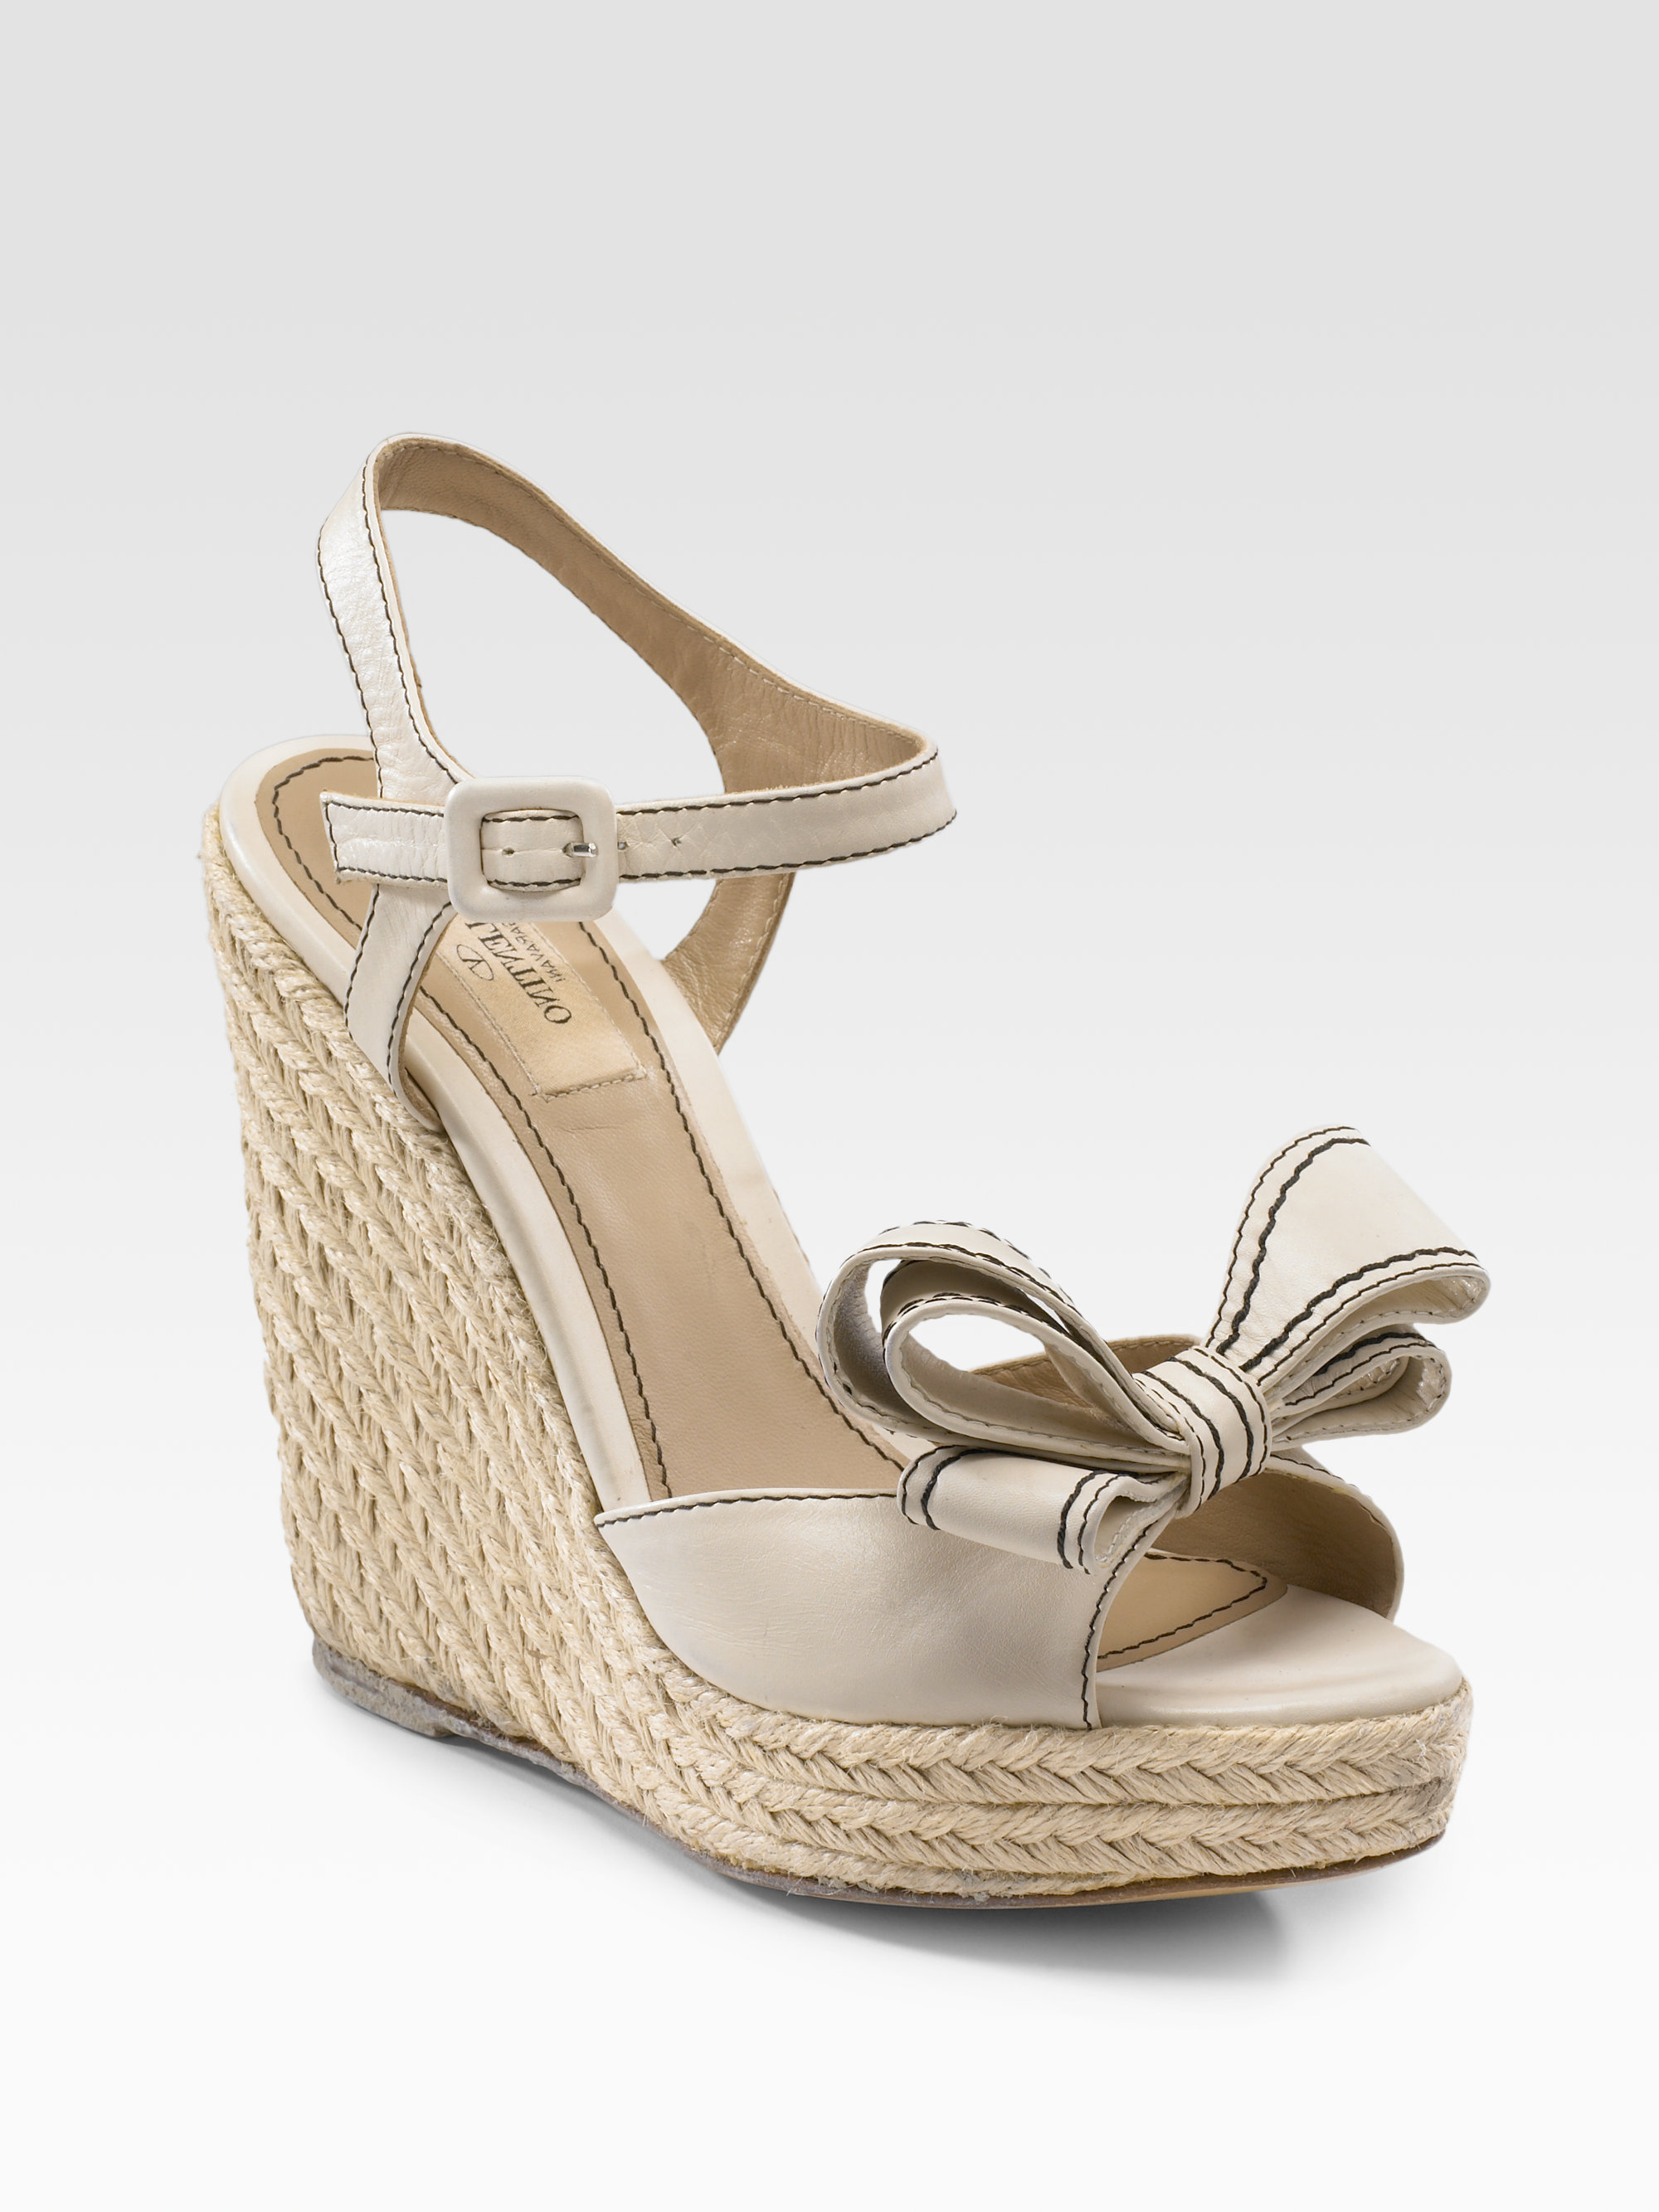 Valentino Couture Bow Espadrille Wedges In Beige Ivory